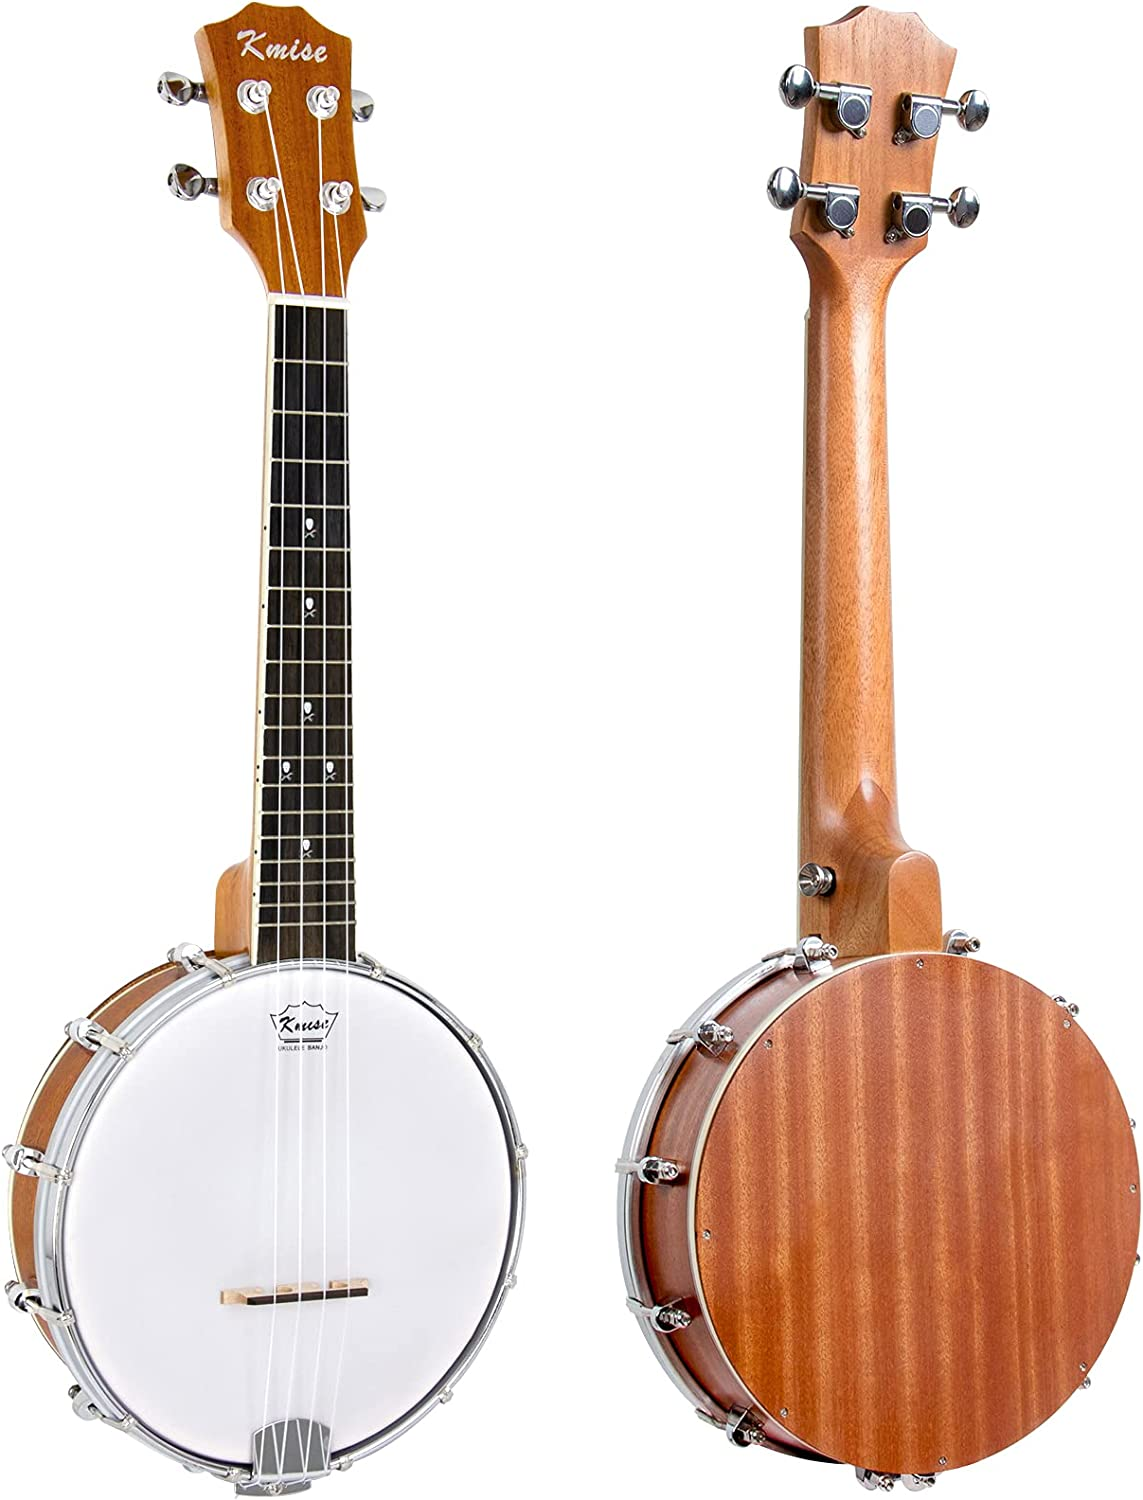 Kmise New products, world's highest quality popular! 4-String Ukulele Right Cash special price MI1663